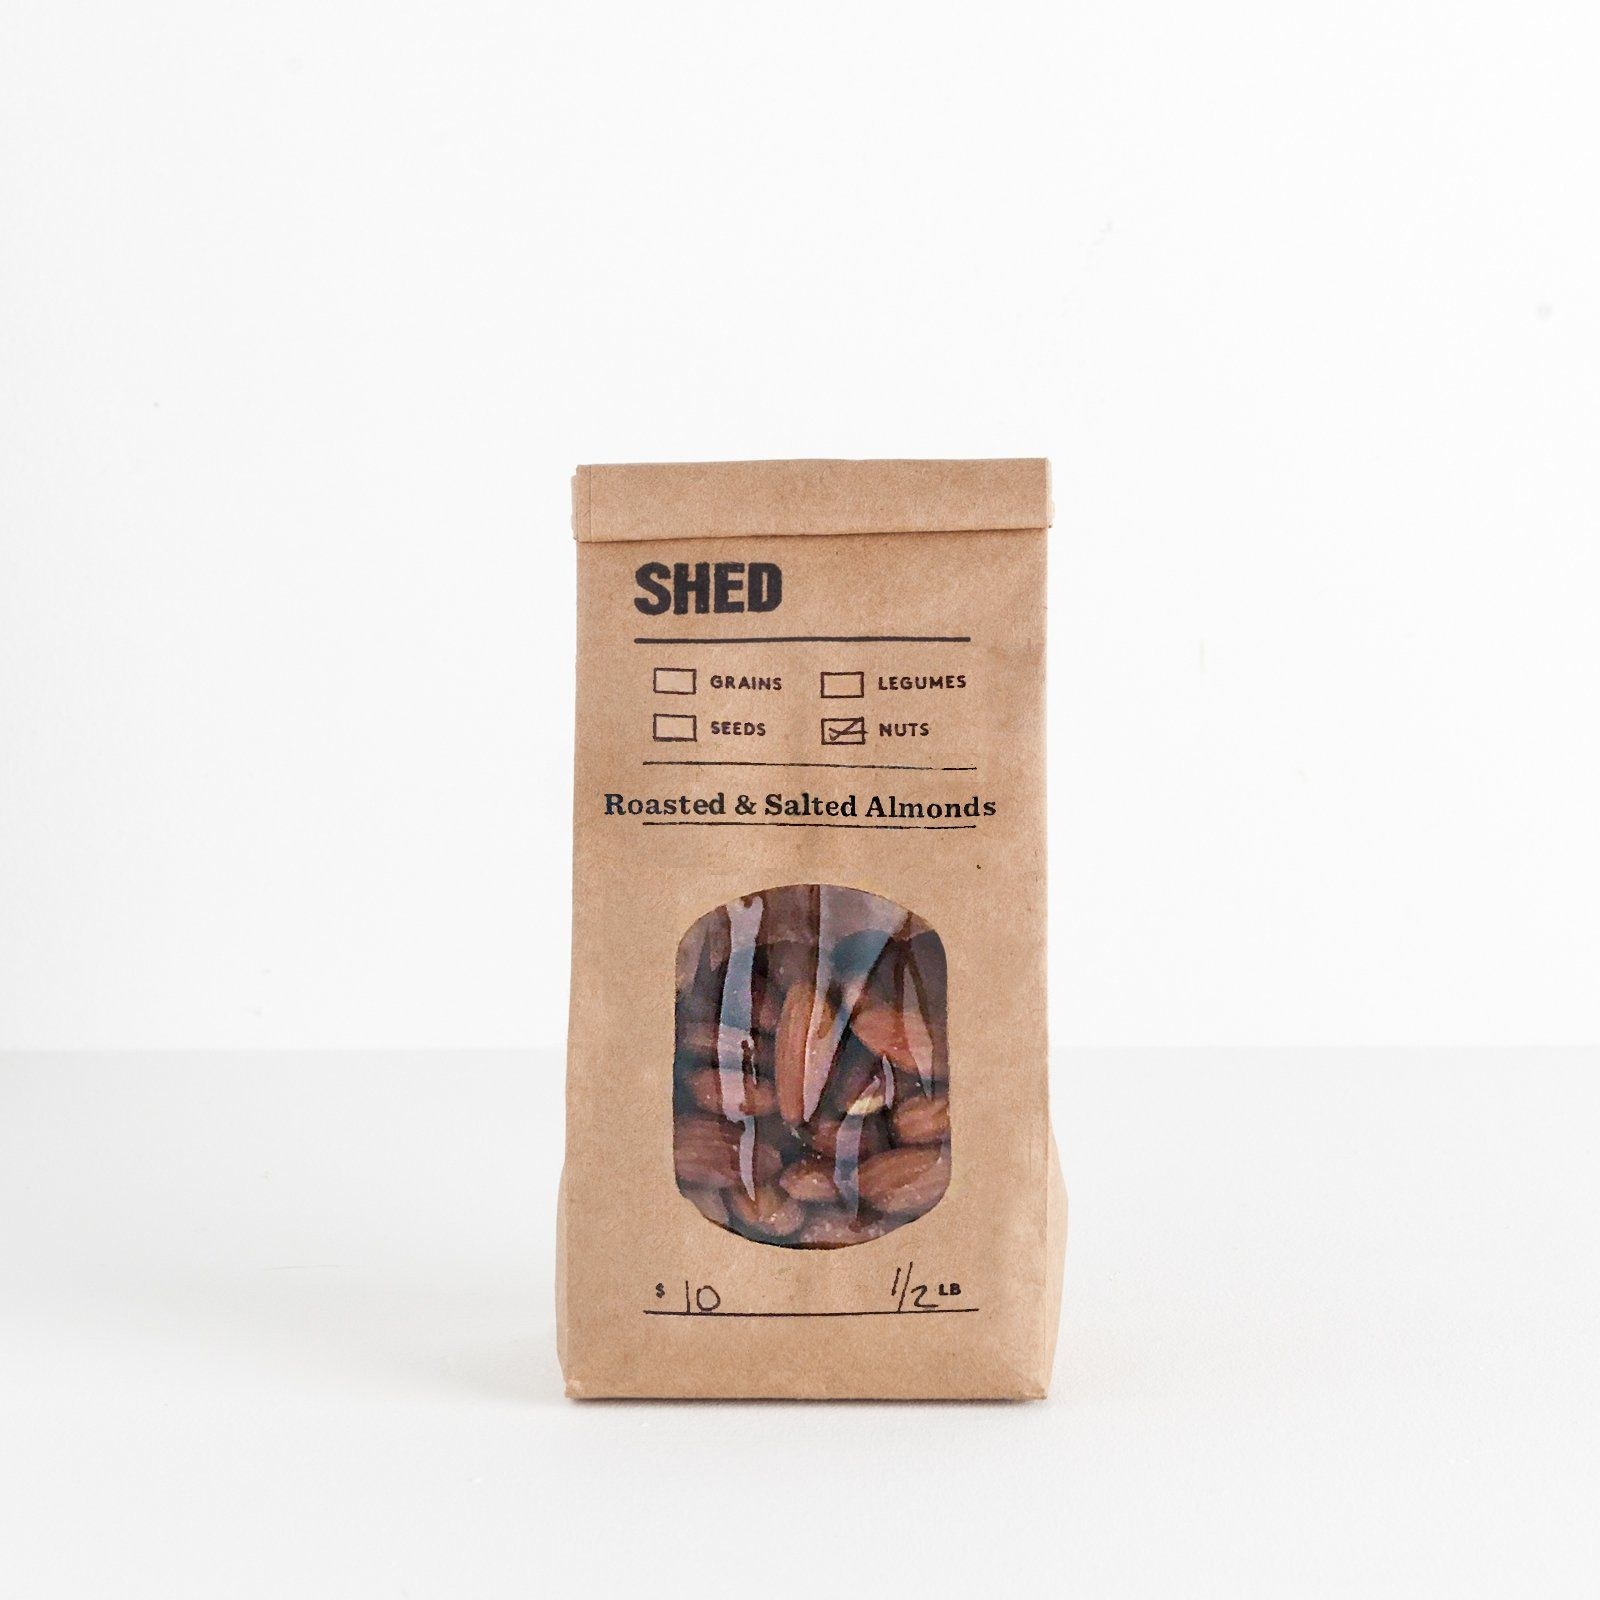 SHED Roasted and Salted Almonds